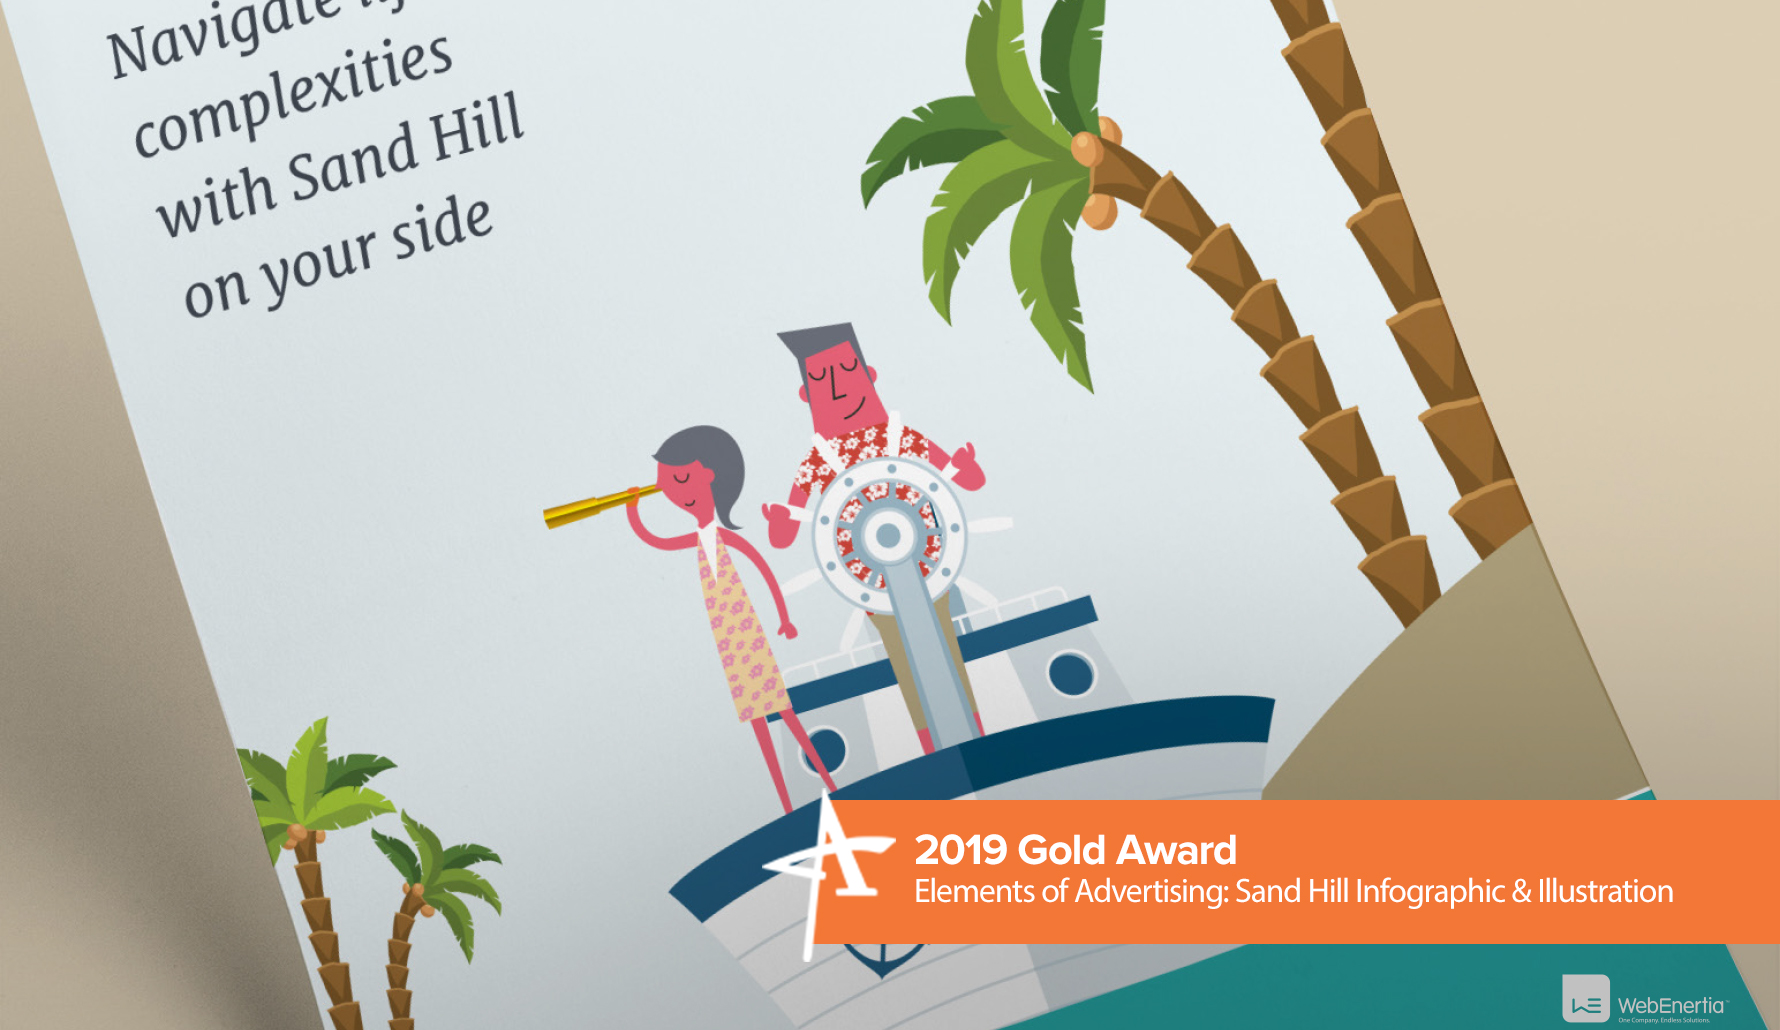 2019 Gold Addy Award - Elements of Advertising: Sand Hill Infographic & Illustration